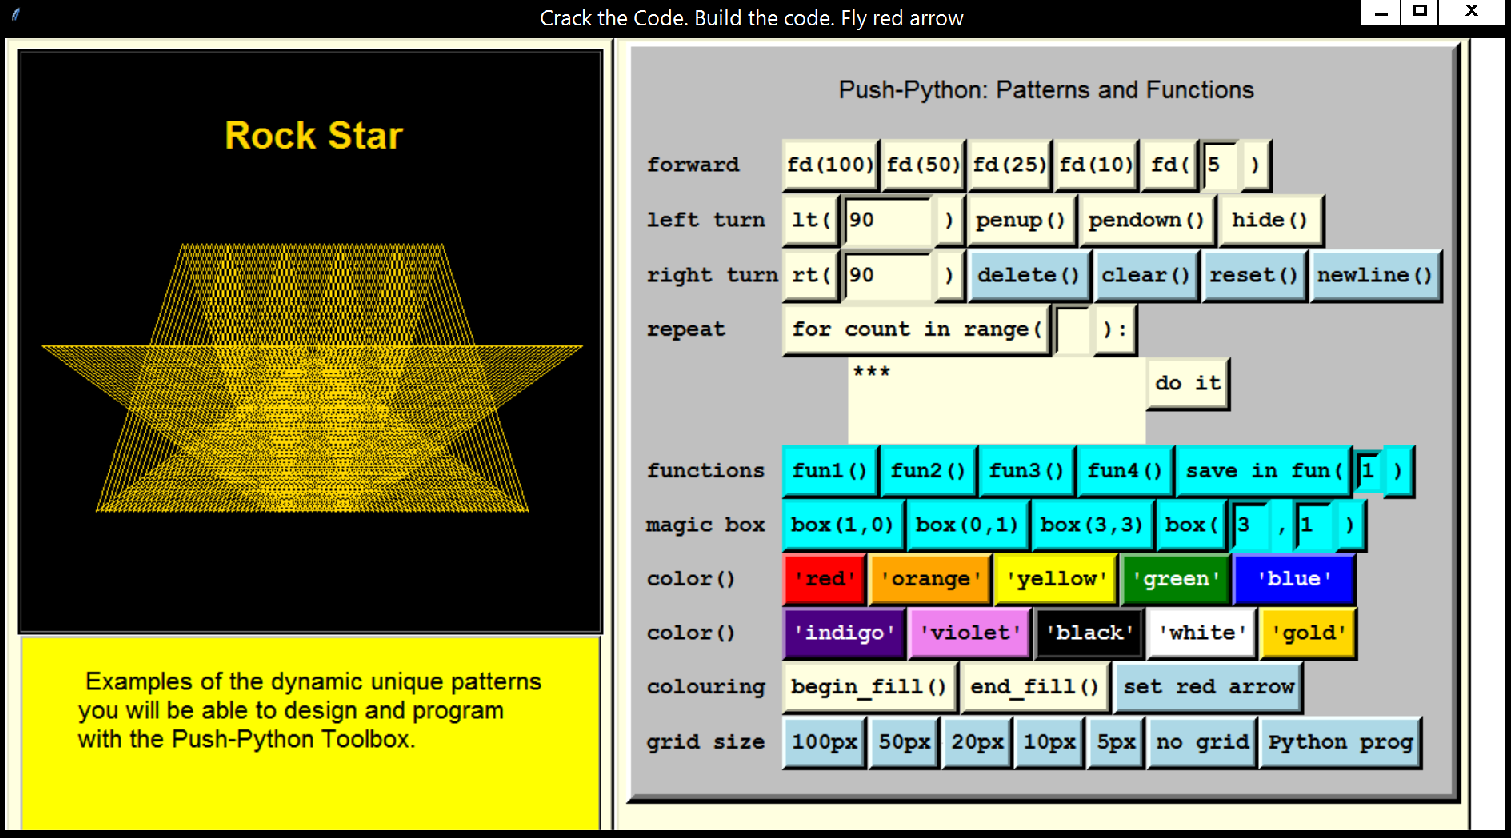 figure 2. Rock Star: A Dynamic Pattern by Translating a Pentagram across the Screen